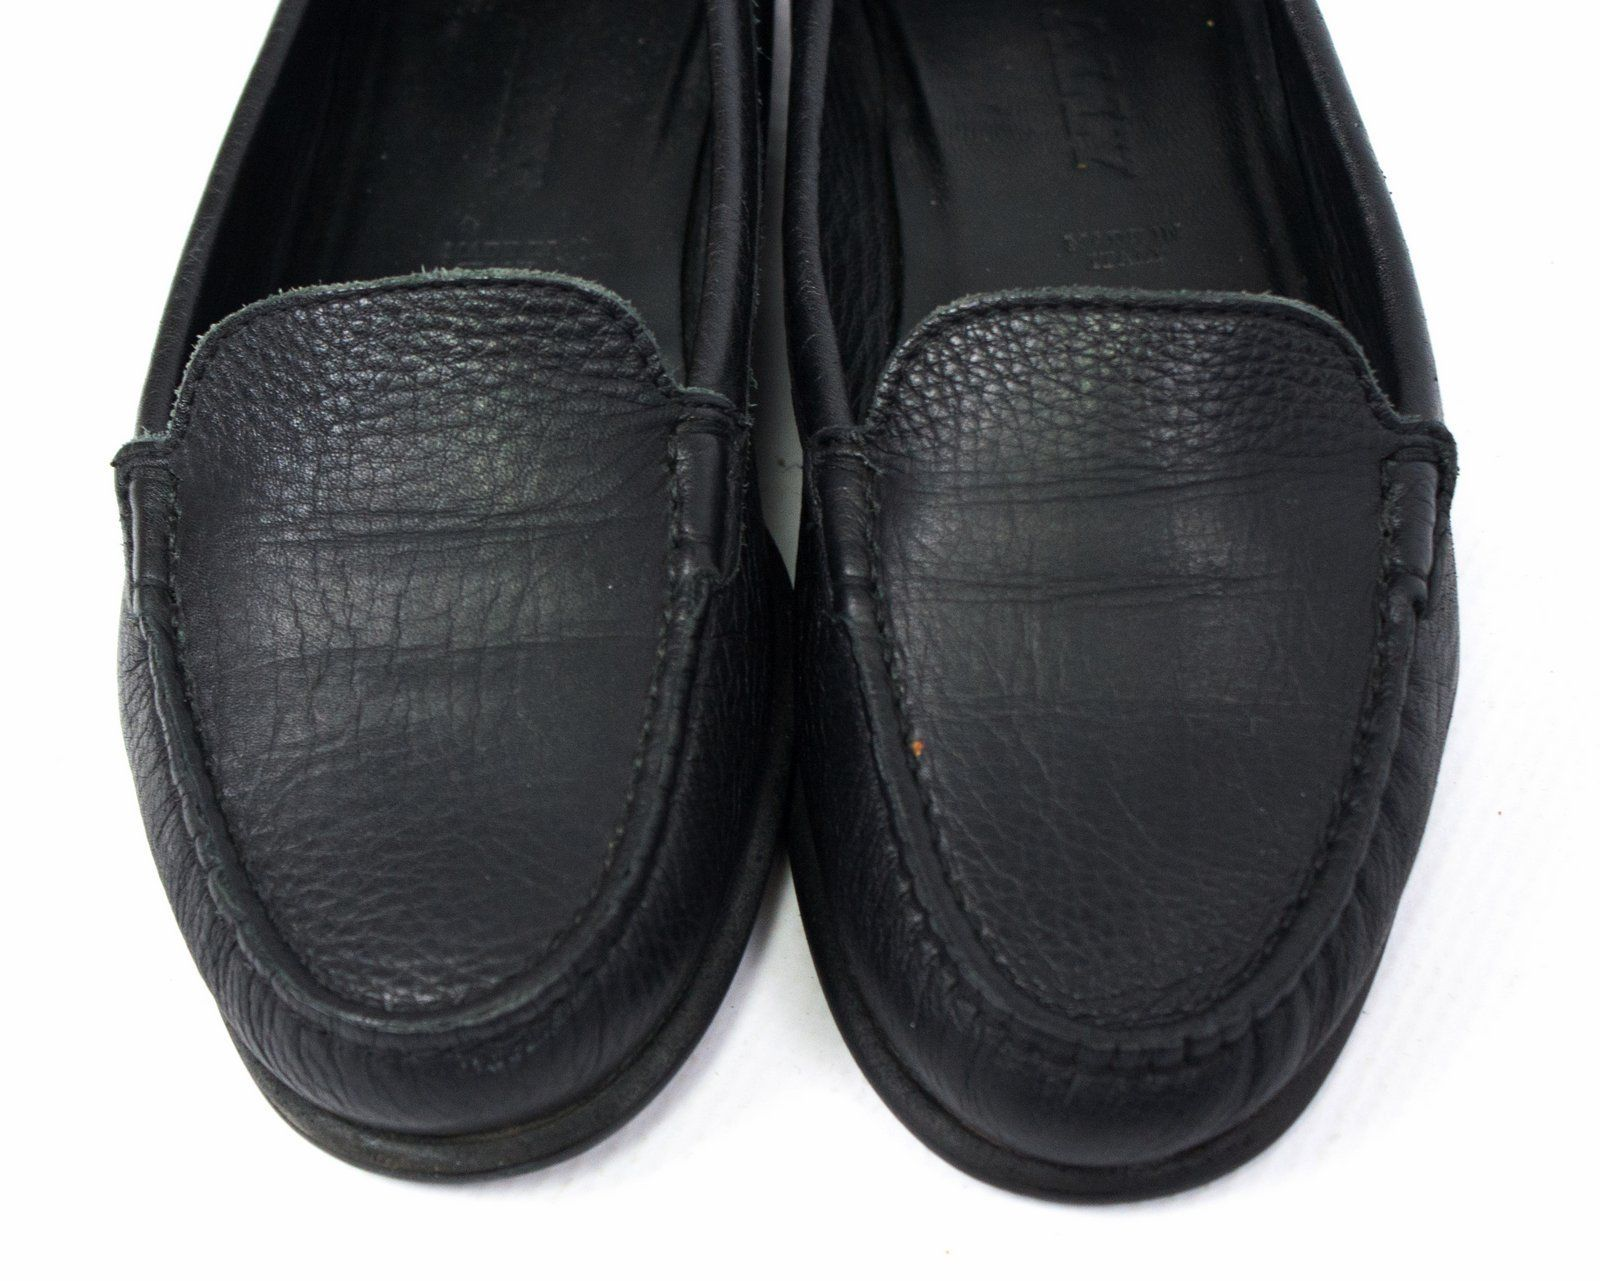 BALLY women's Black Leather Loafers, EU 37/ US 6.5/ UK 4 - secondfirst